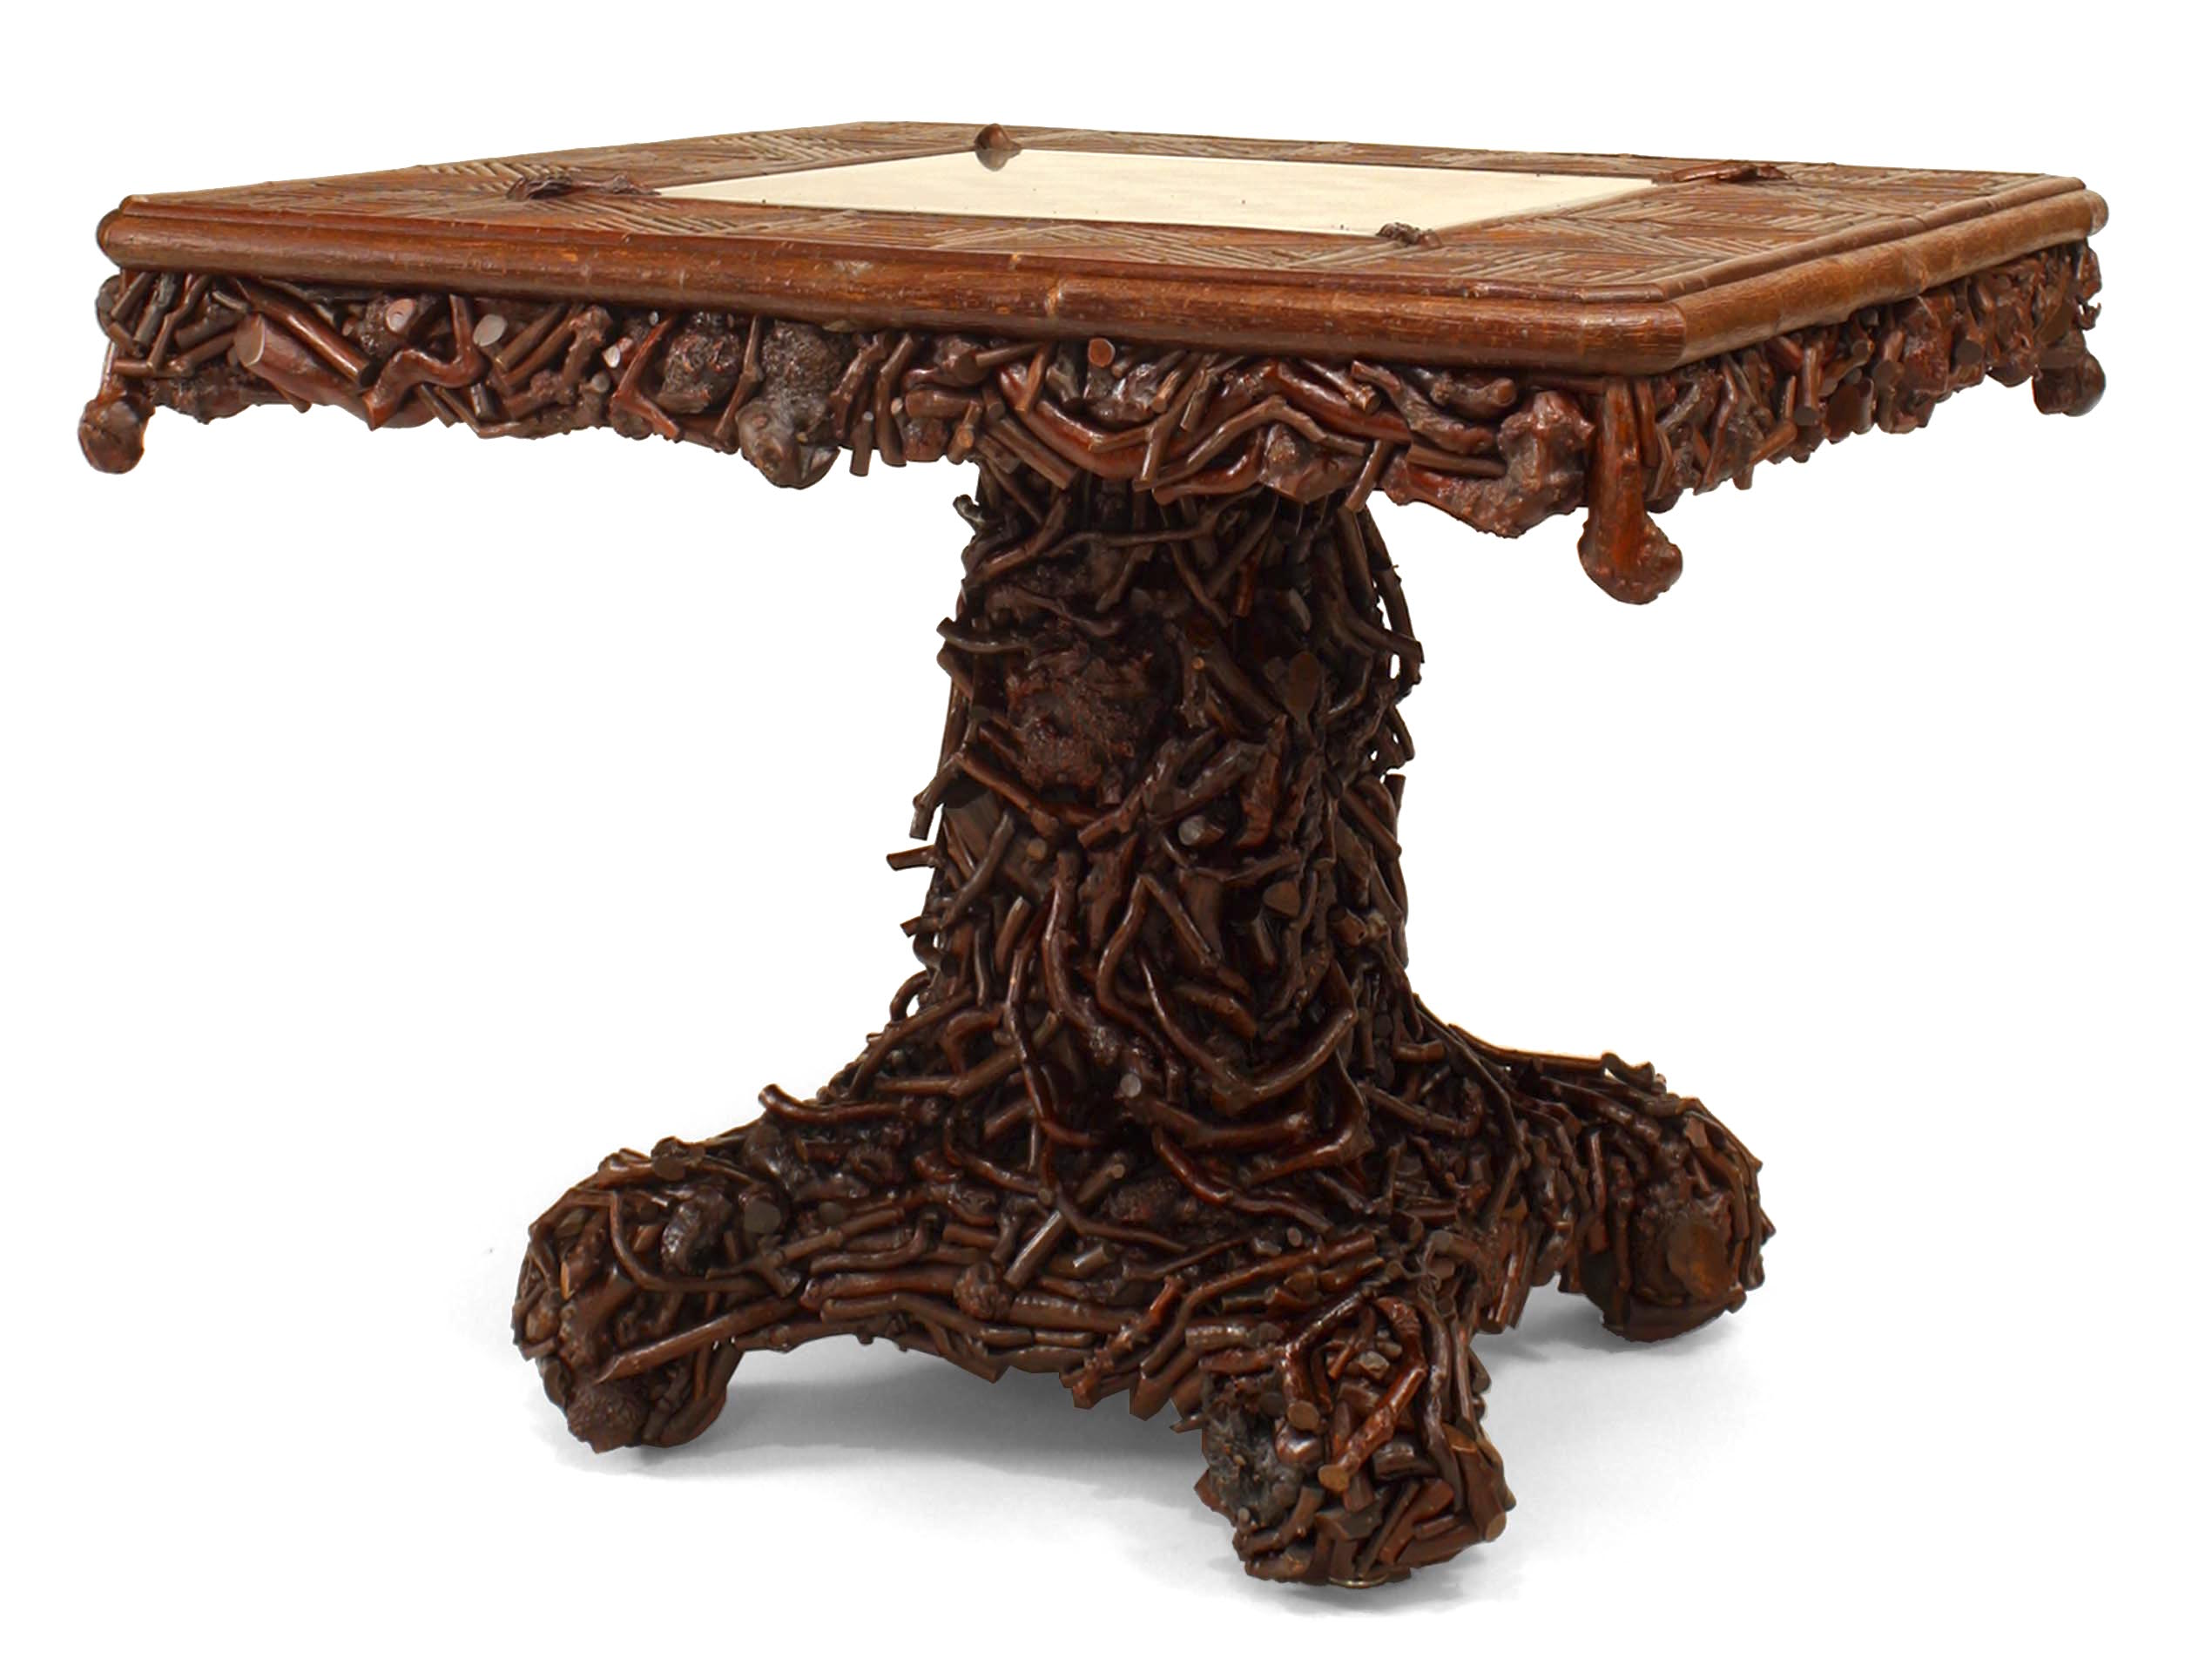 American Rustic Chess Game Table With Slat Twig and Root Design